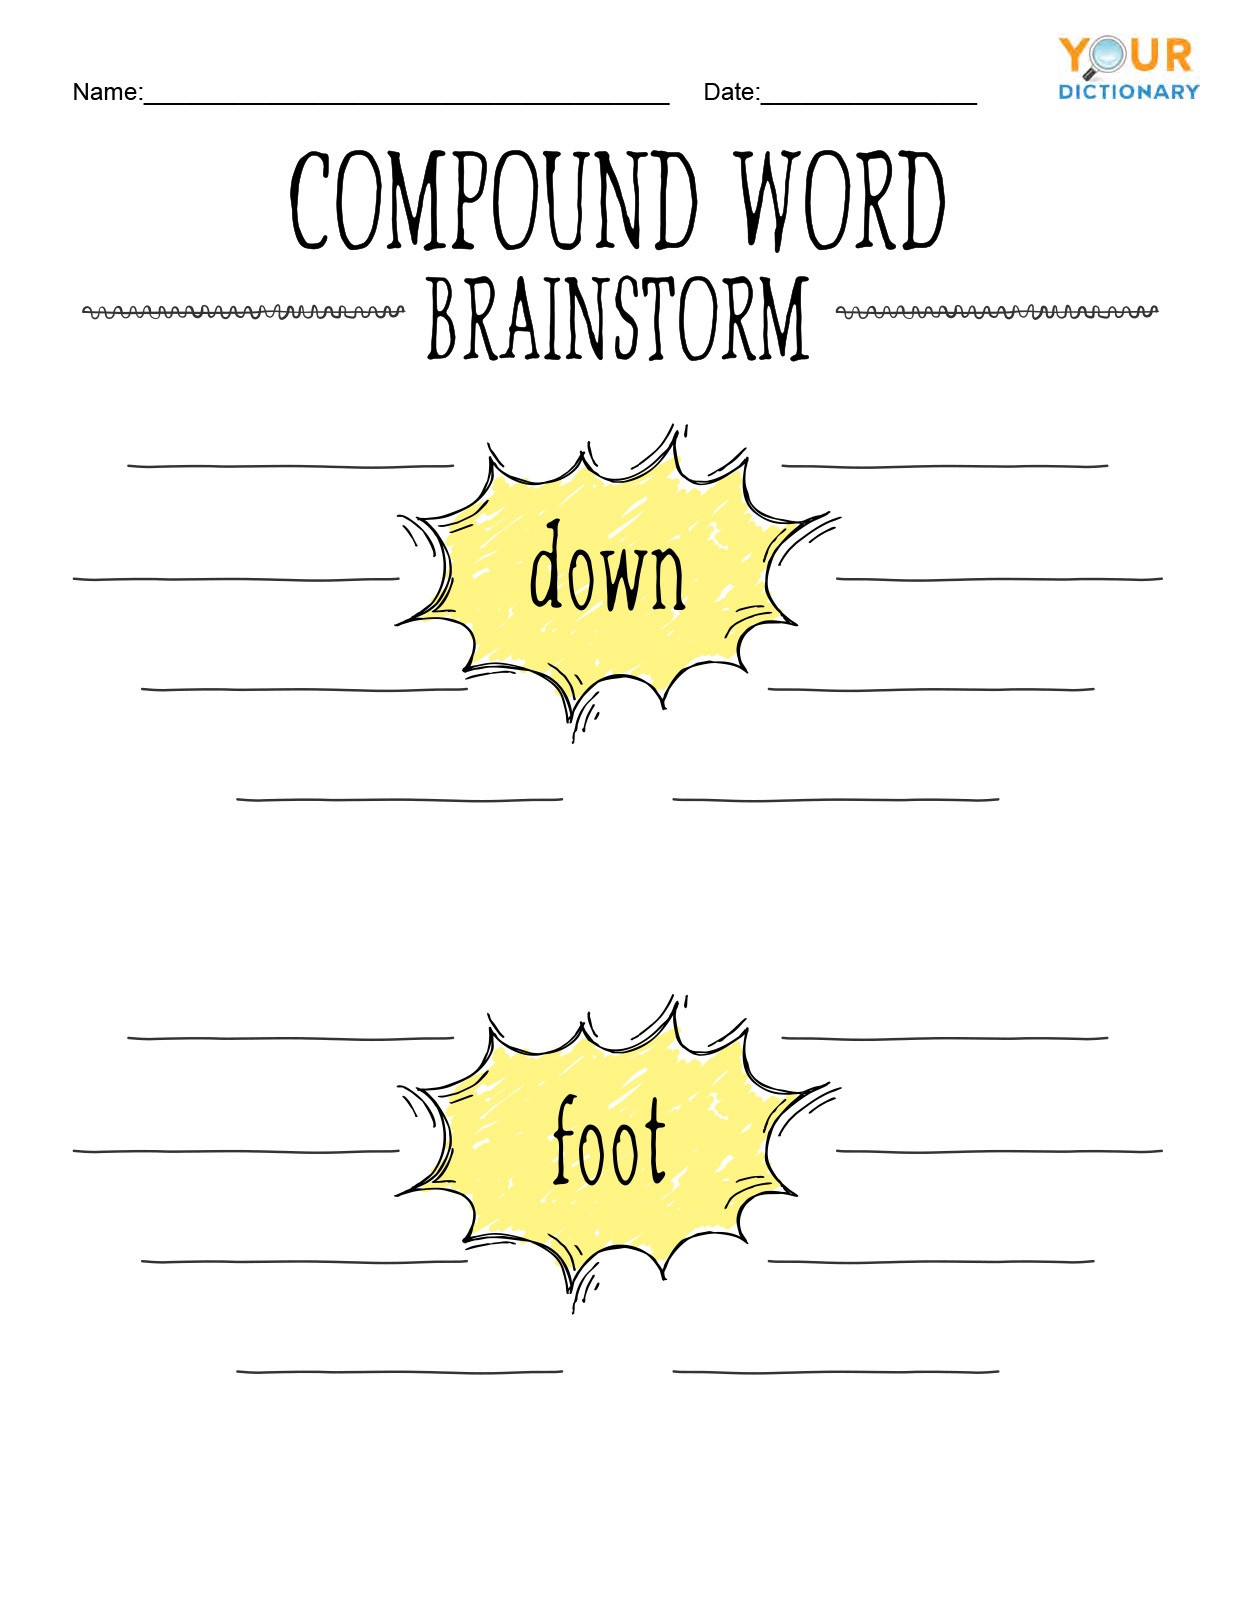 Compound Word Worksheet 2nd Grade Fun Exercises for Pound Words